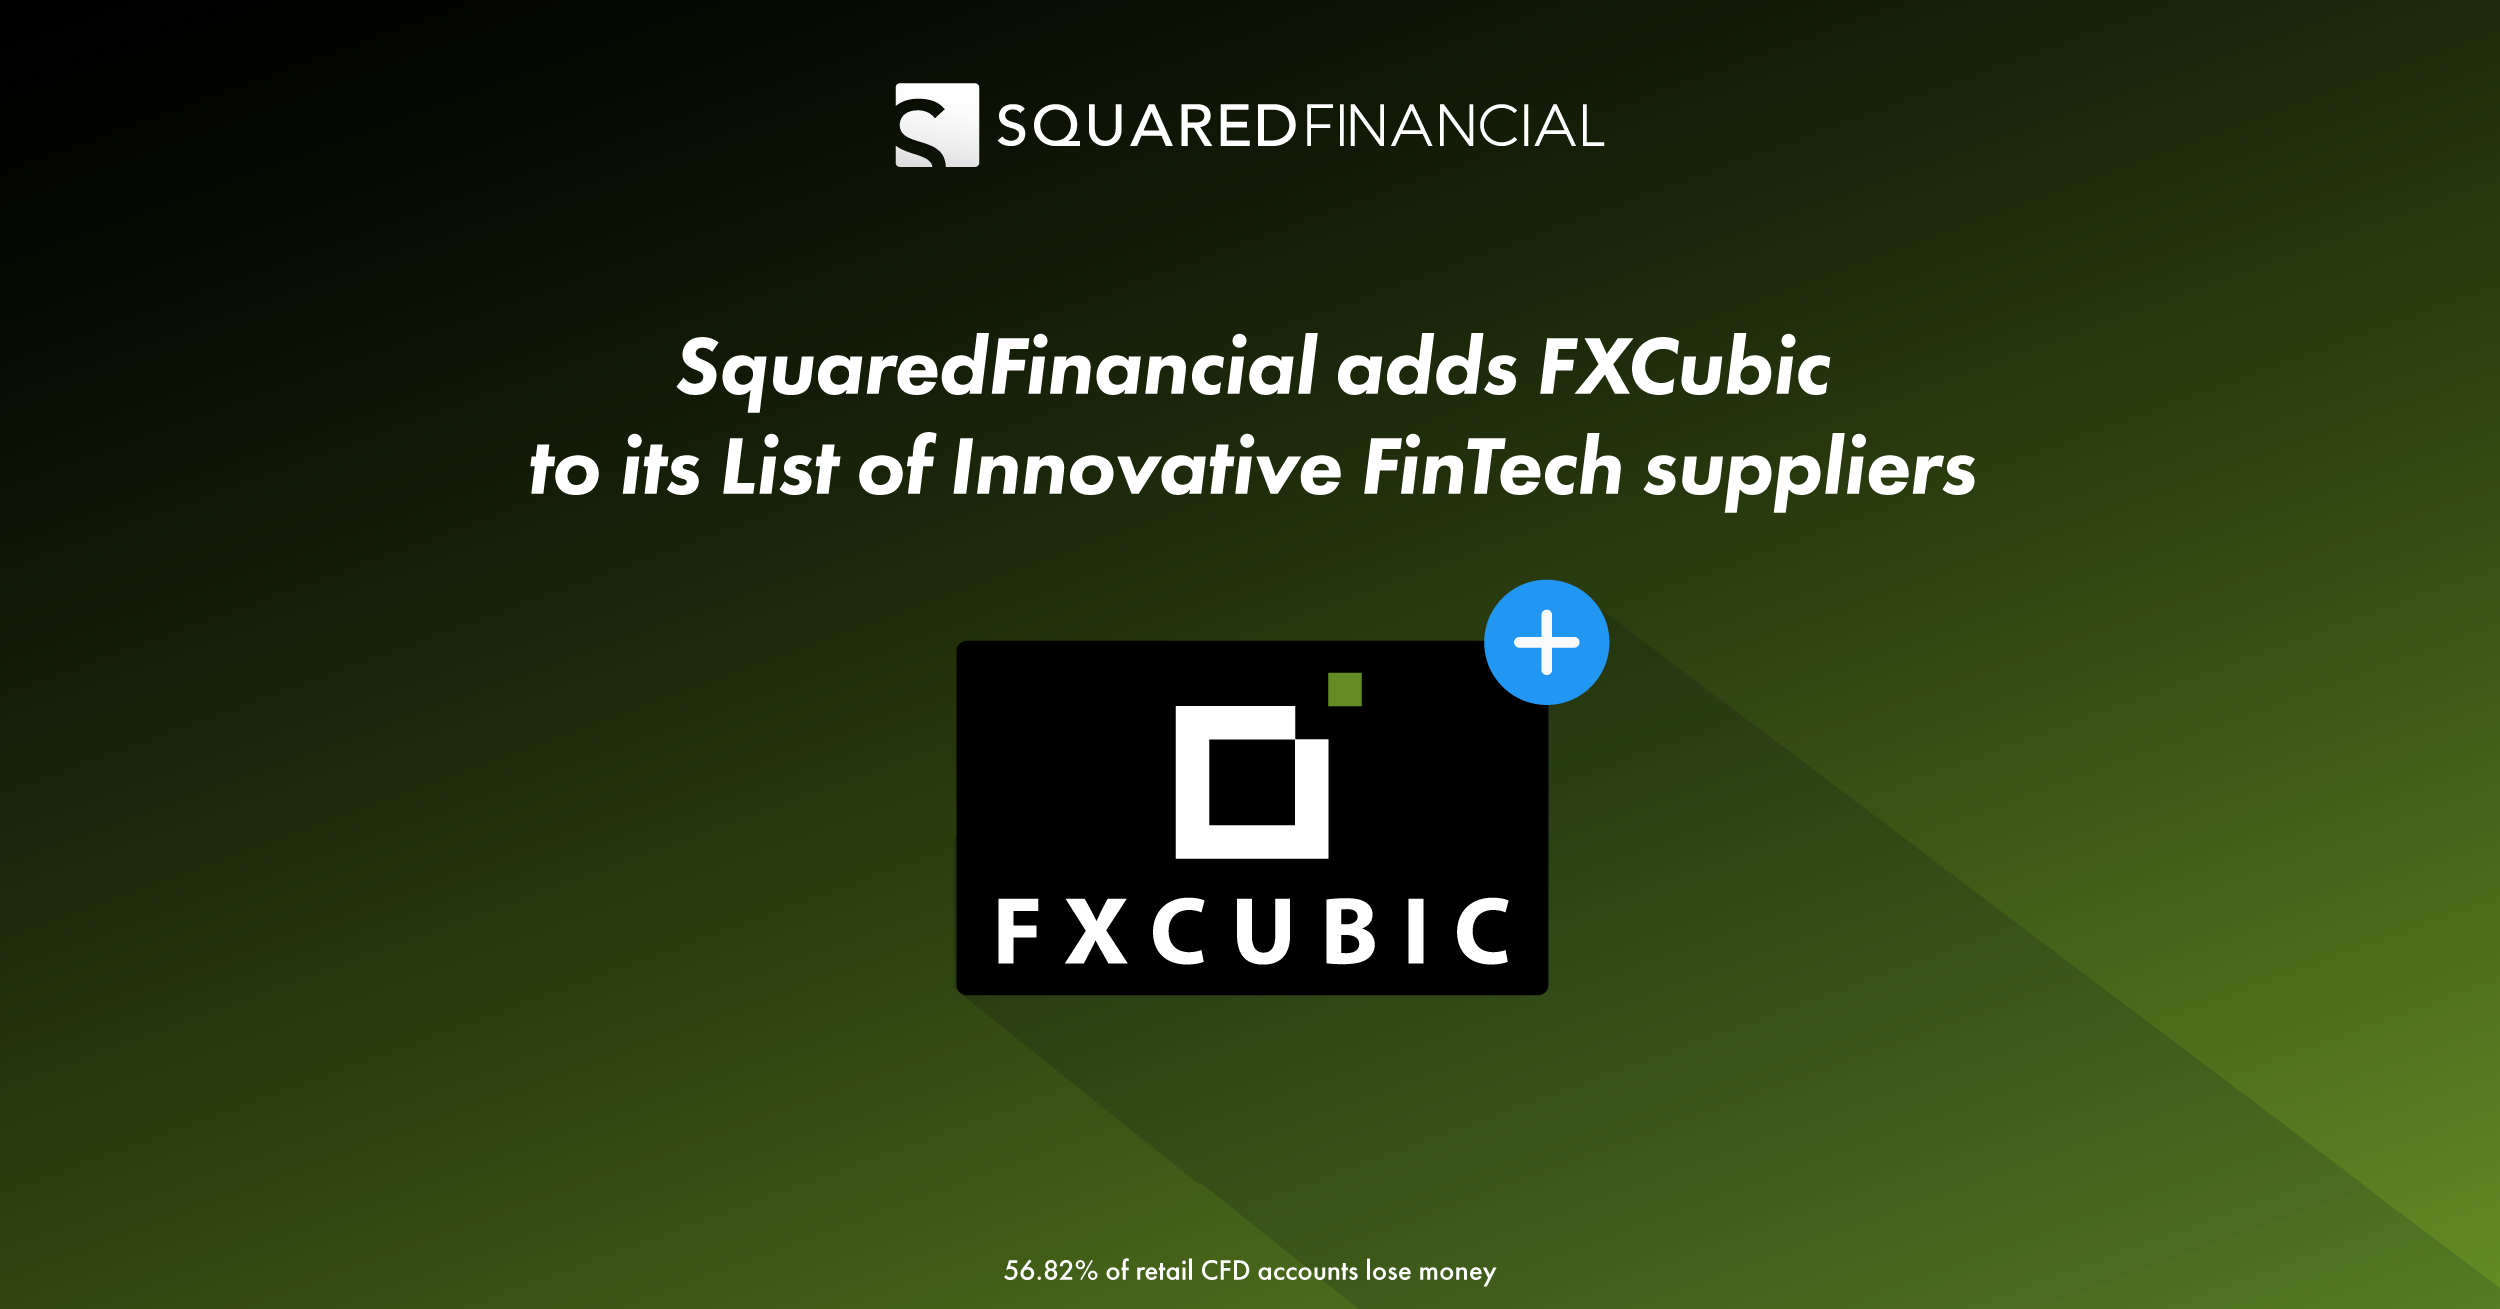 SquaredFinancial adds FXCubic to its List of Innovative FinTech suppliers